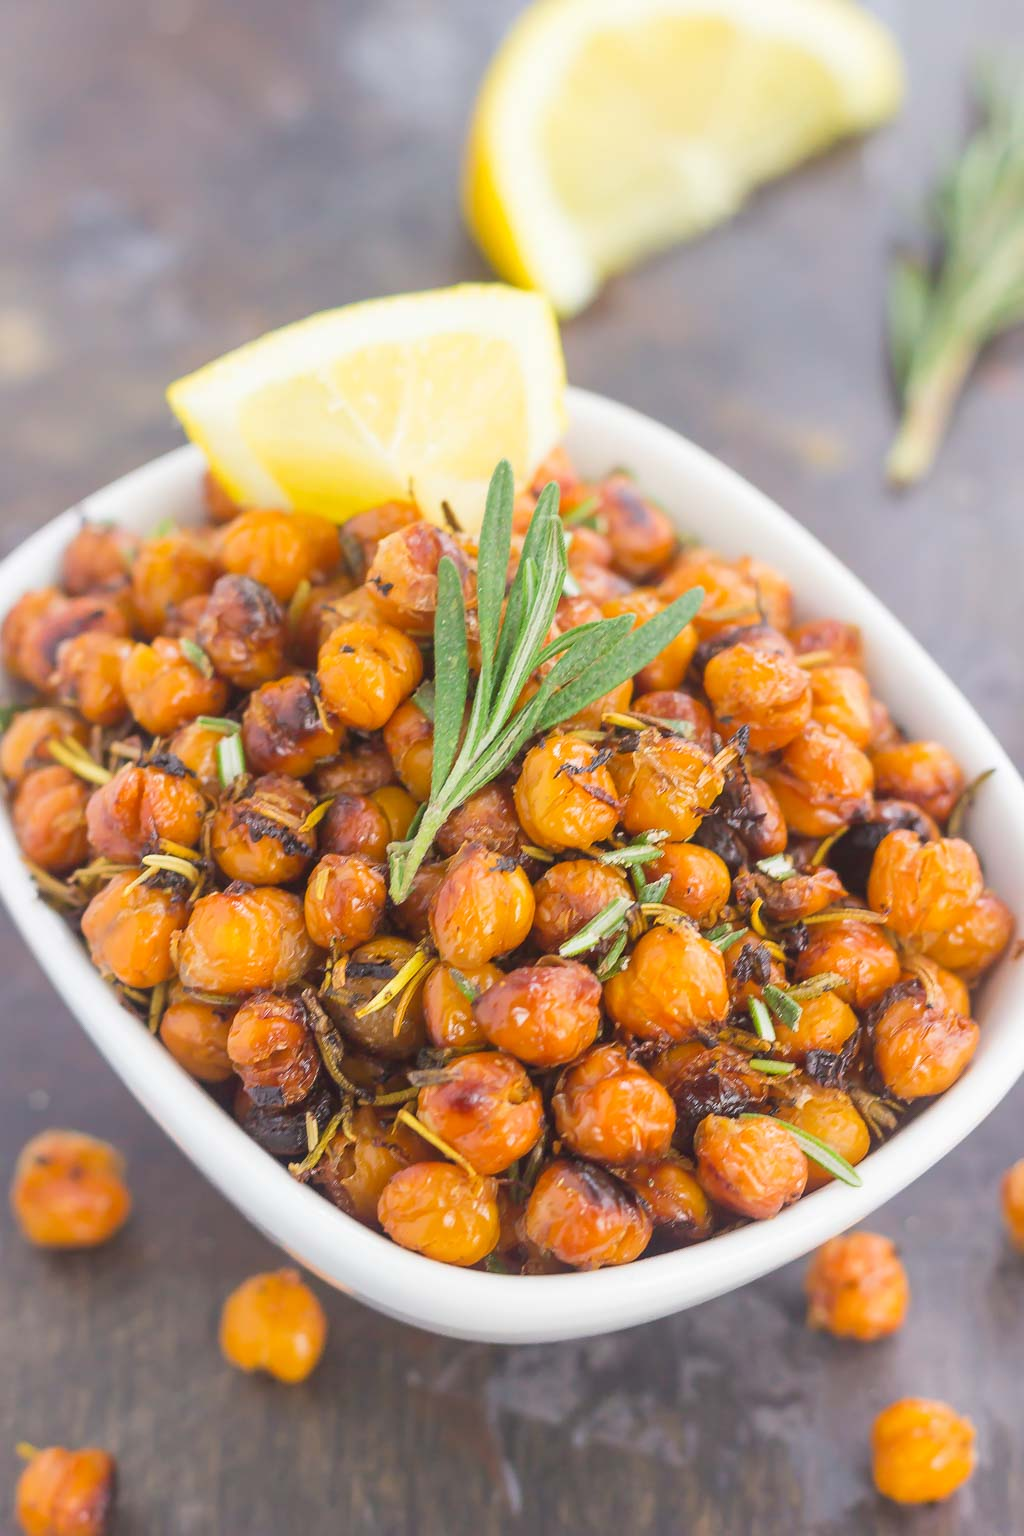 These Roasted Lemon Rosemary Chickpeas make a delicious snack or great addition to salads or soups. Packed with tangy lemon and fresh rosemary, these crunchy chickpeas are easy to make and perfect for when the munchies strike!